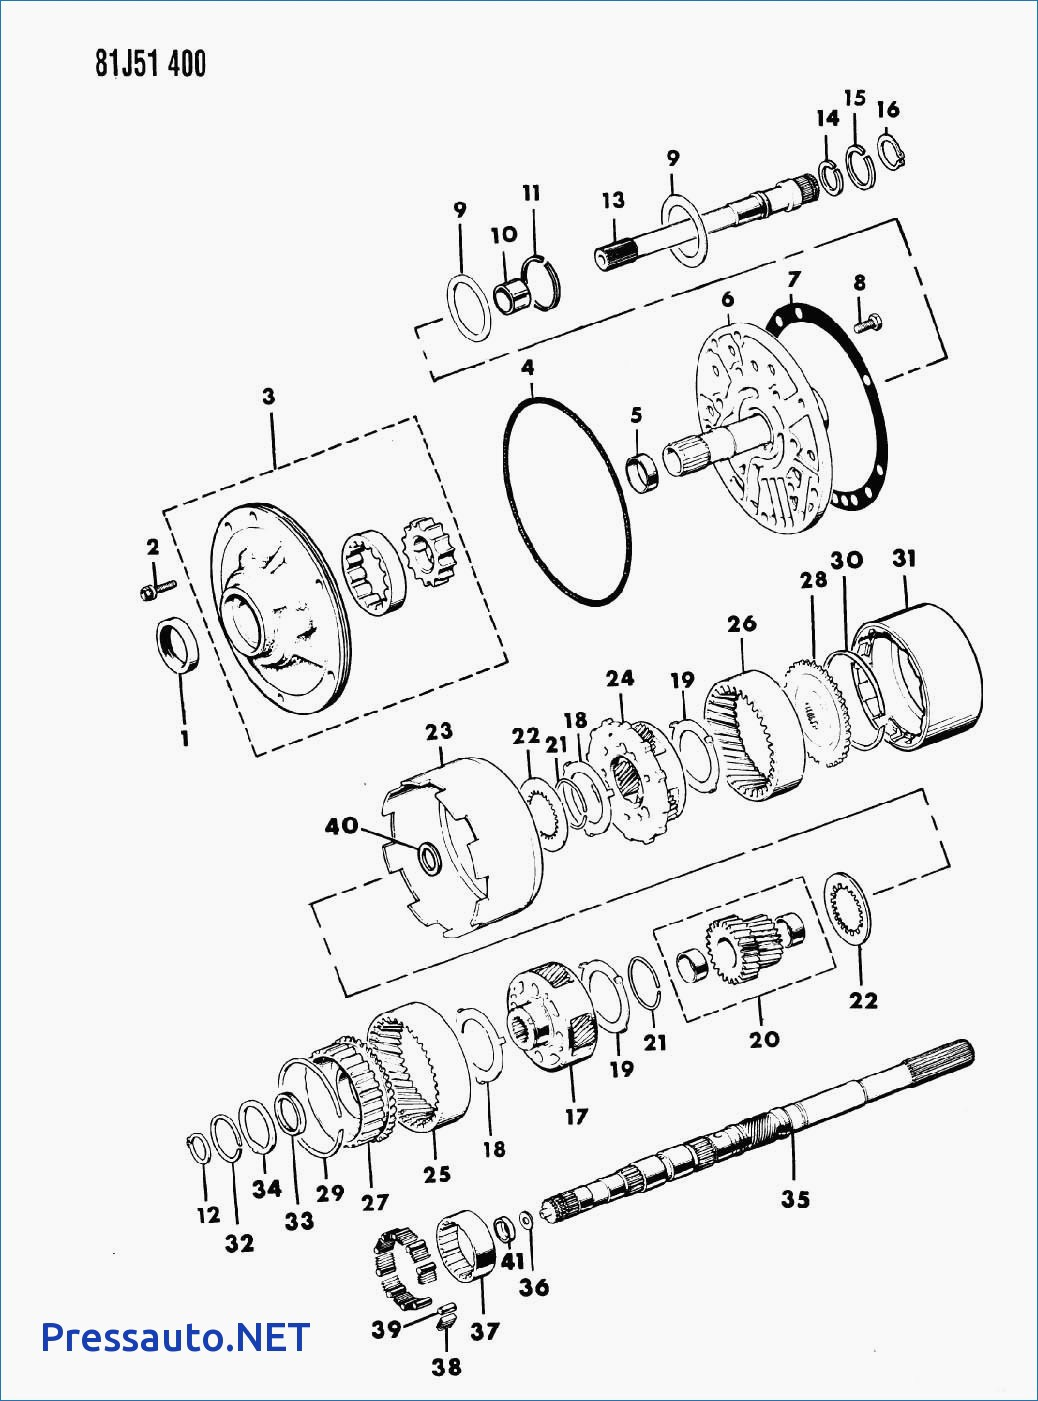 69 Camaro Drawing At Free For Personal Use 1969 Cowl Induction Wiring Diagram 1038x1401 Trans Am With Template 1967 67